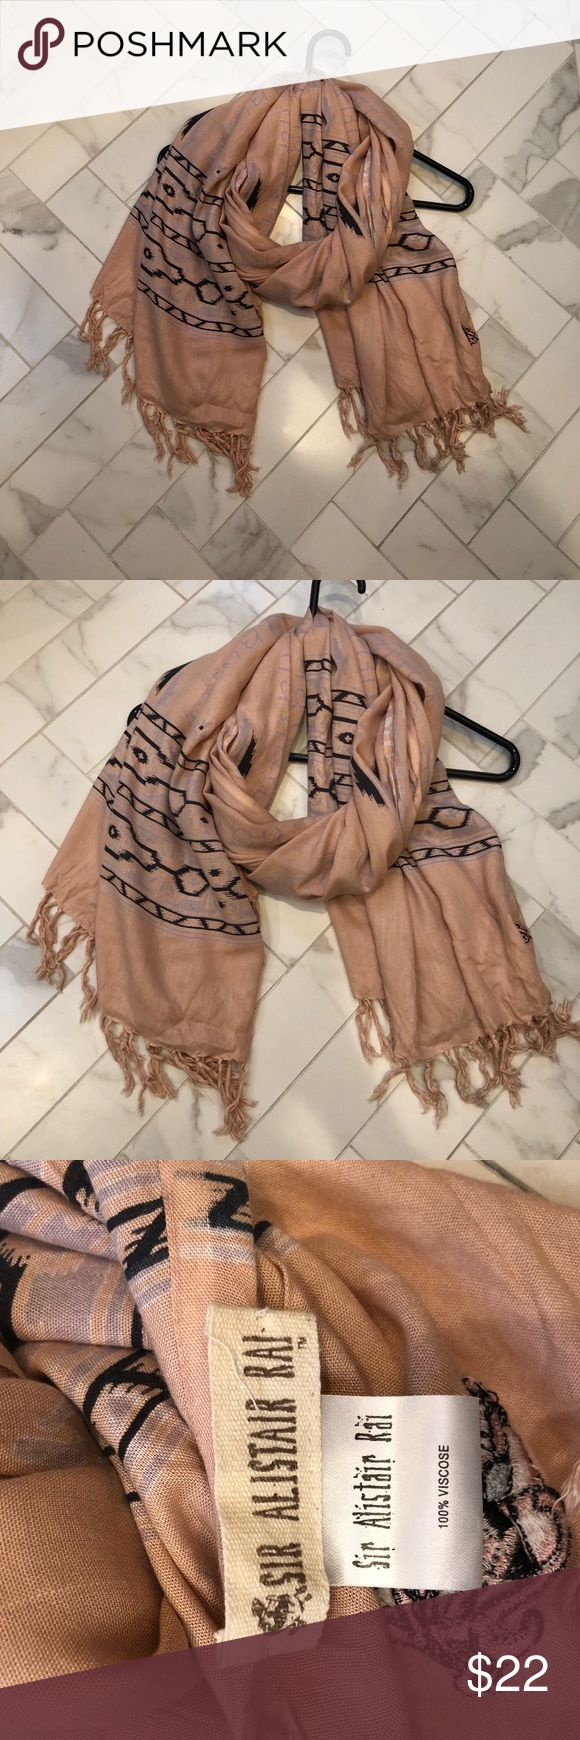 Light Pink and Navy Scarf - Sir Allstar Rai Excellent condition. Sir Alistair Rai Accessories Scarves & Wraps